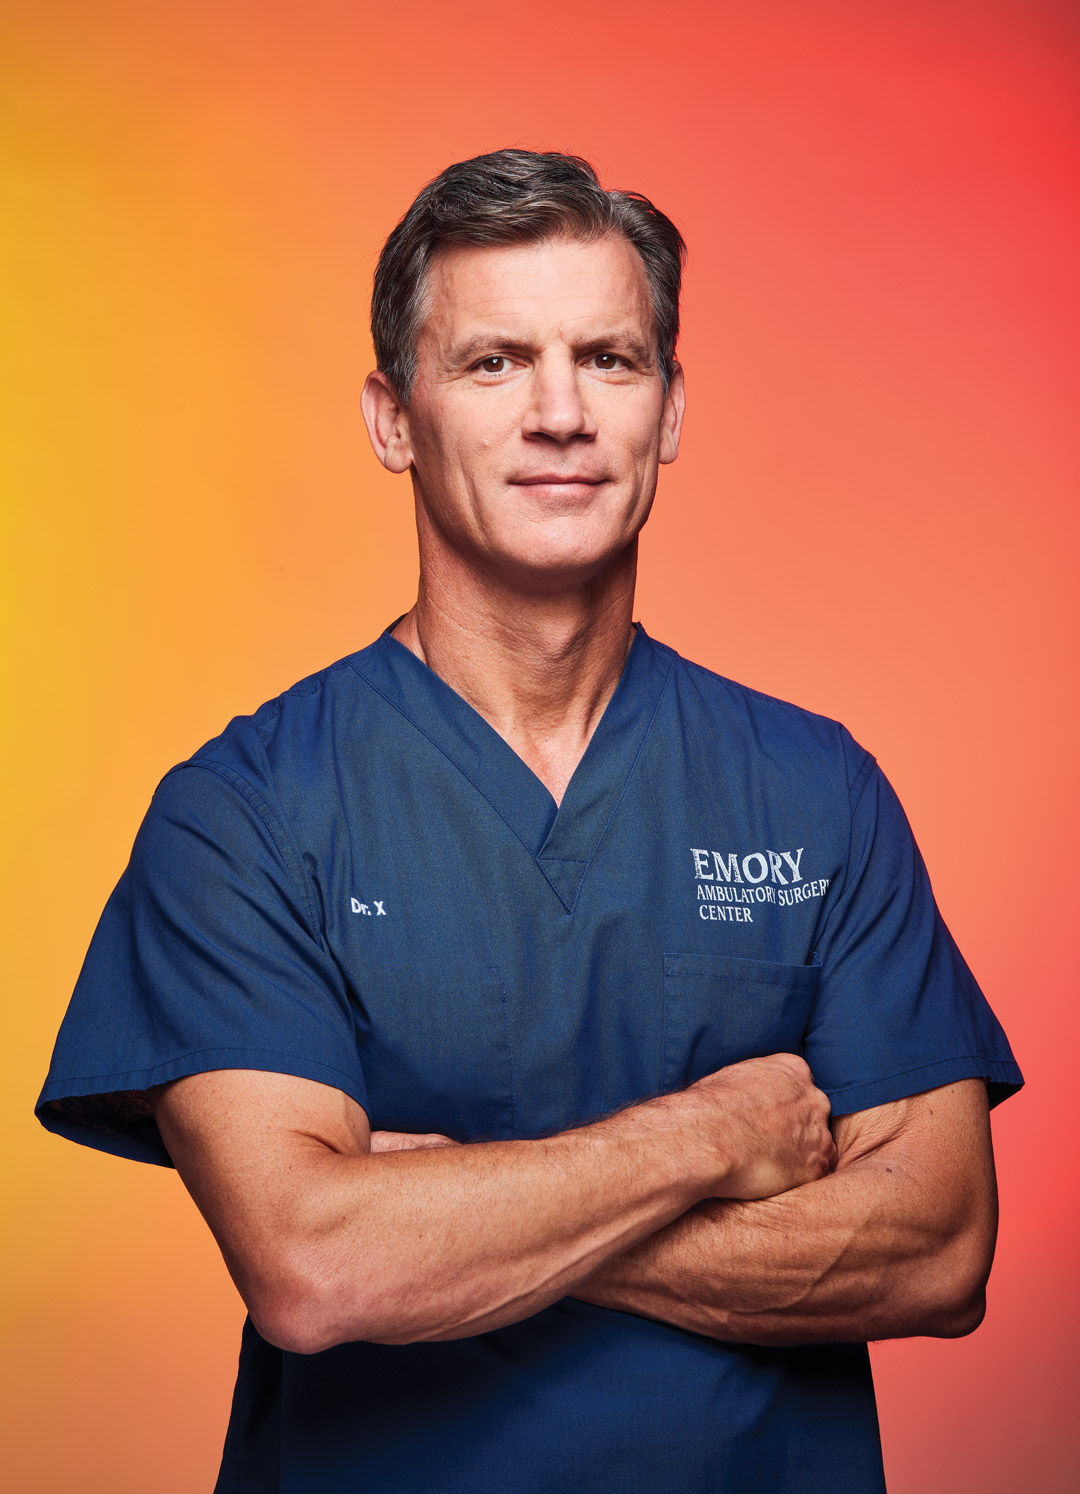 Top Doctors in Atlanta: John Xerogeanes